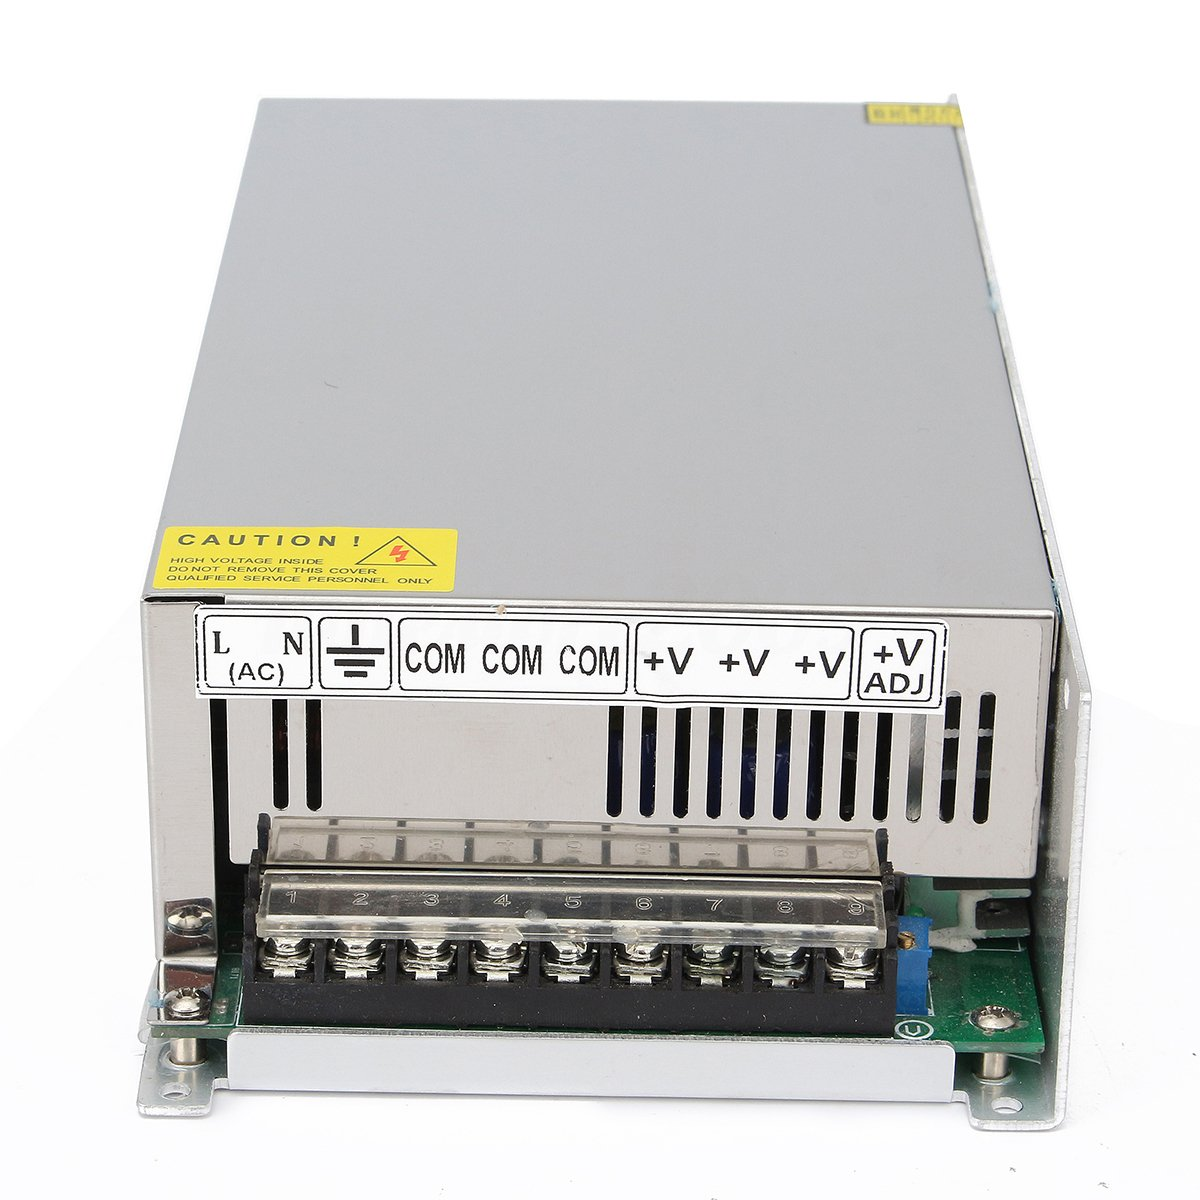 48V 20A 1000W Universal Regulated Switching Power Supply Driver for CCTV camera LED Strip AC 100-240V Input to DC 48V by Xunba Tech (Image #6)